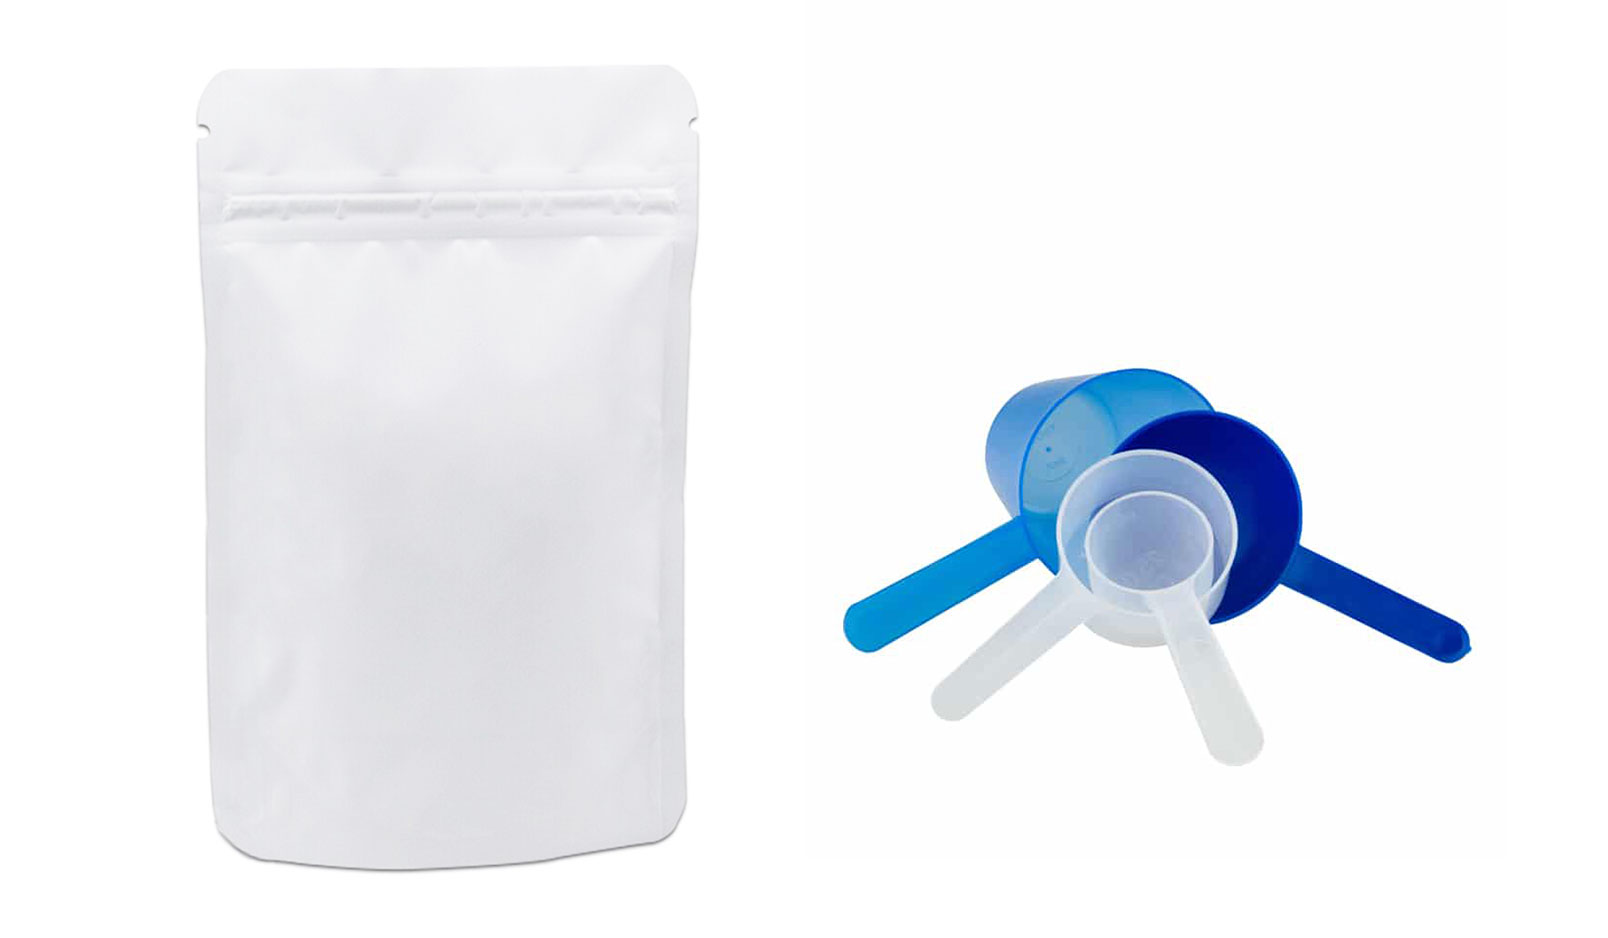 scoope-dosing-and-doypack-for-private-label-powder-sports-supplements-pharma-manufacture